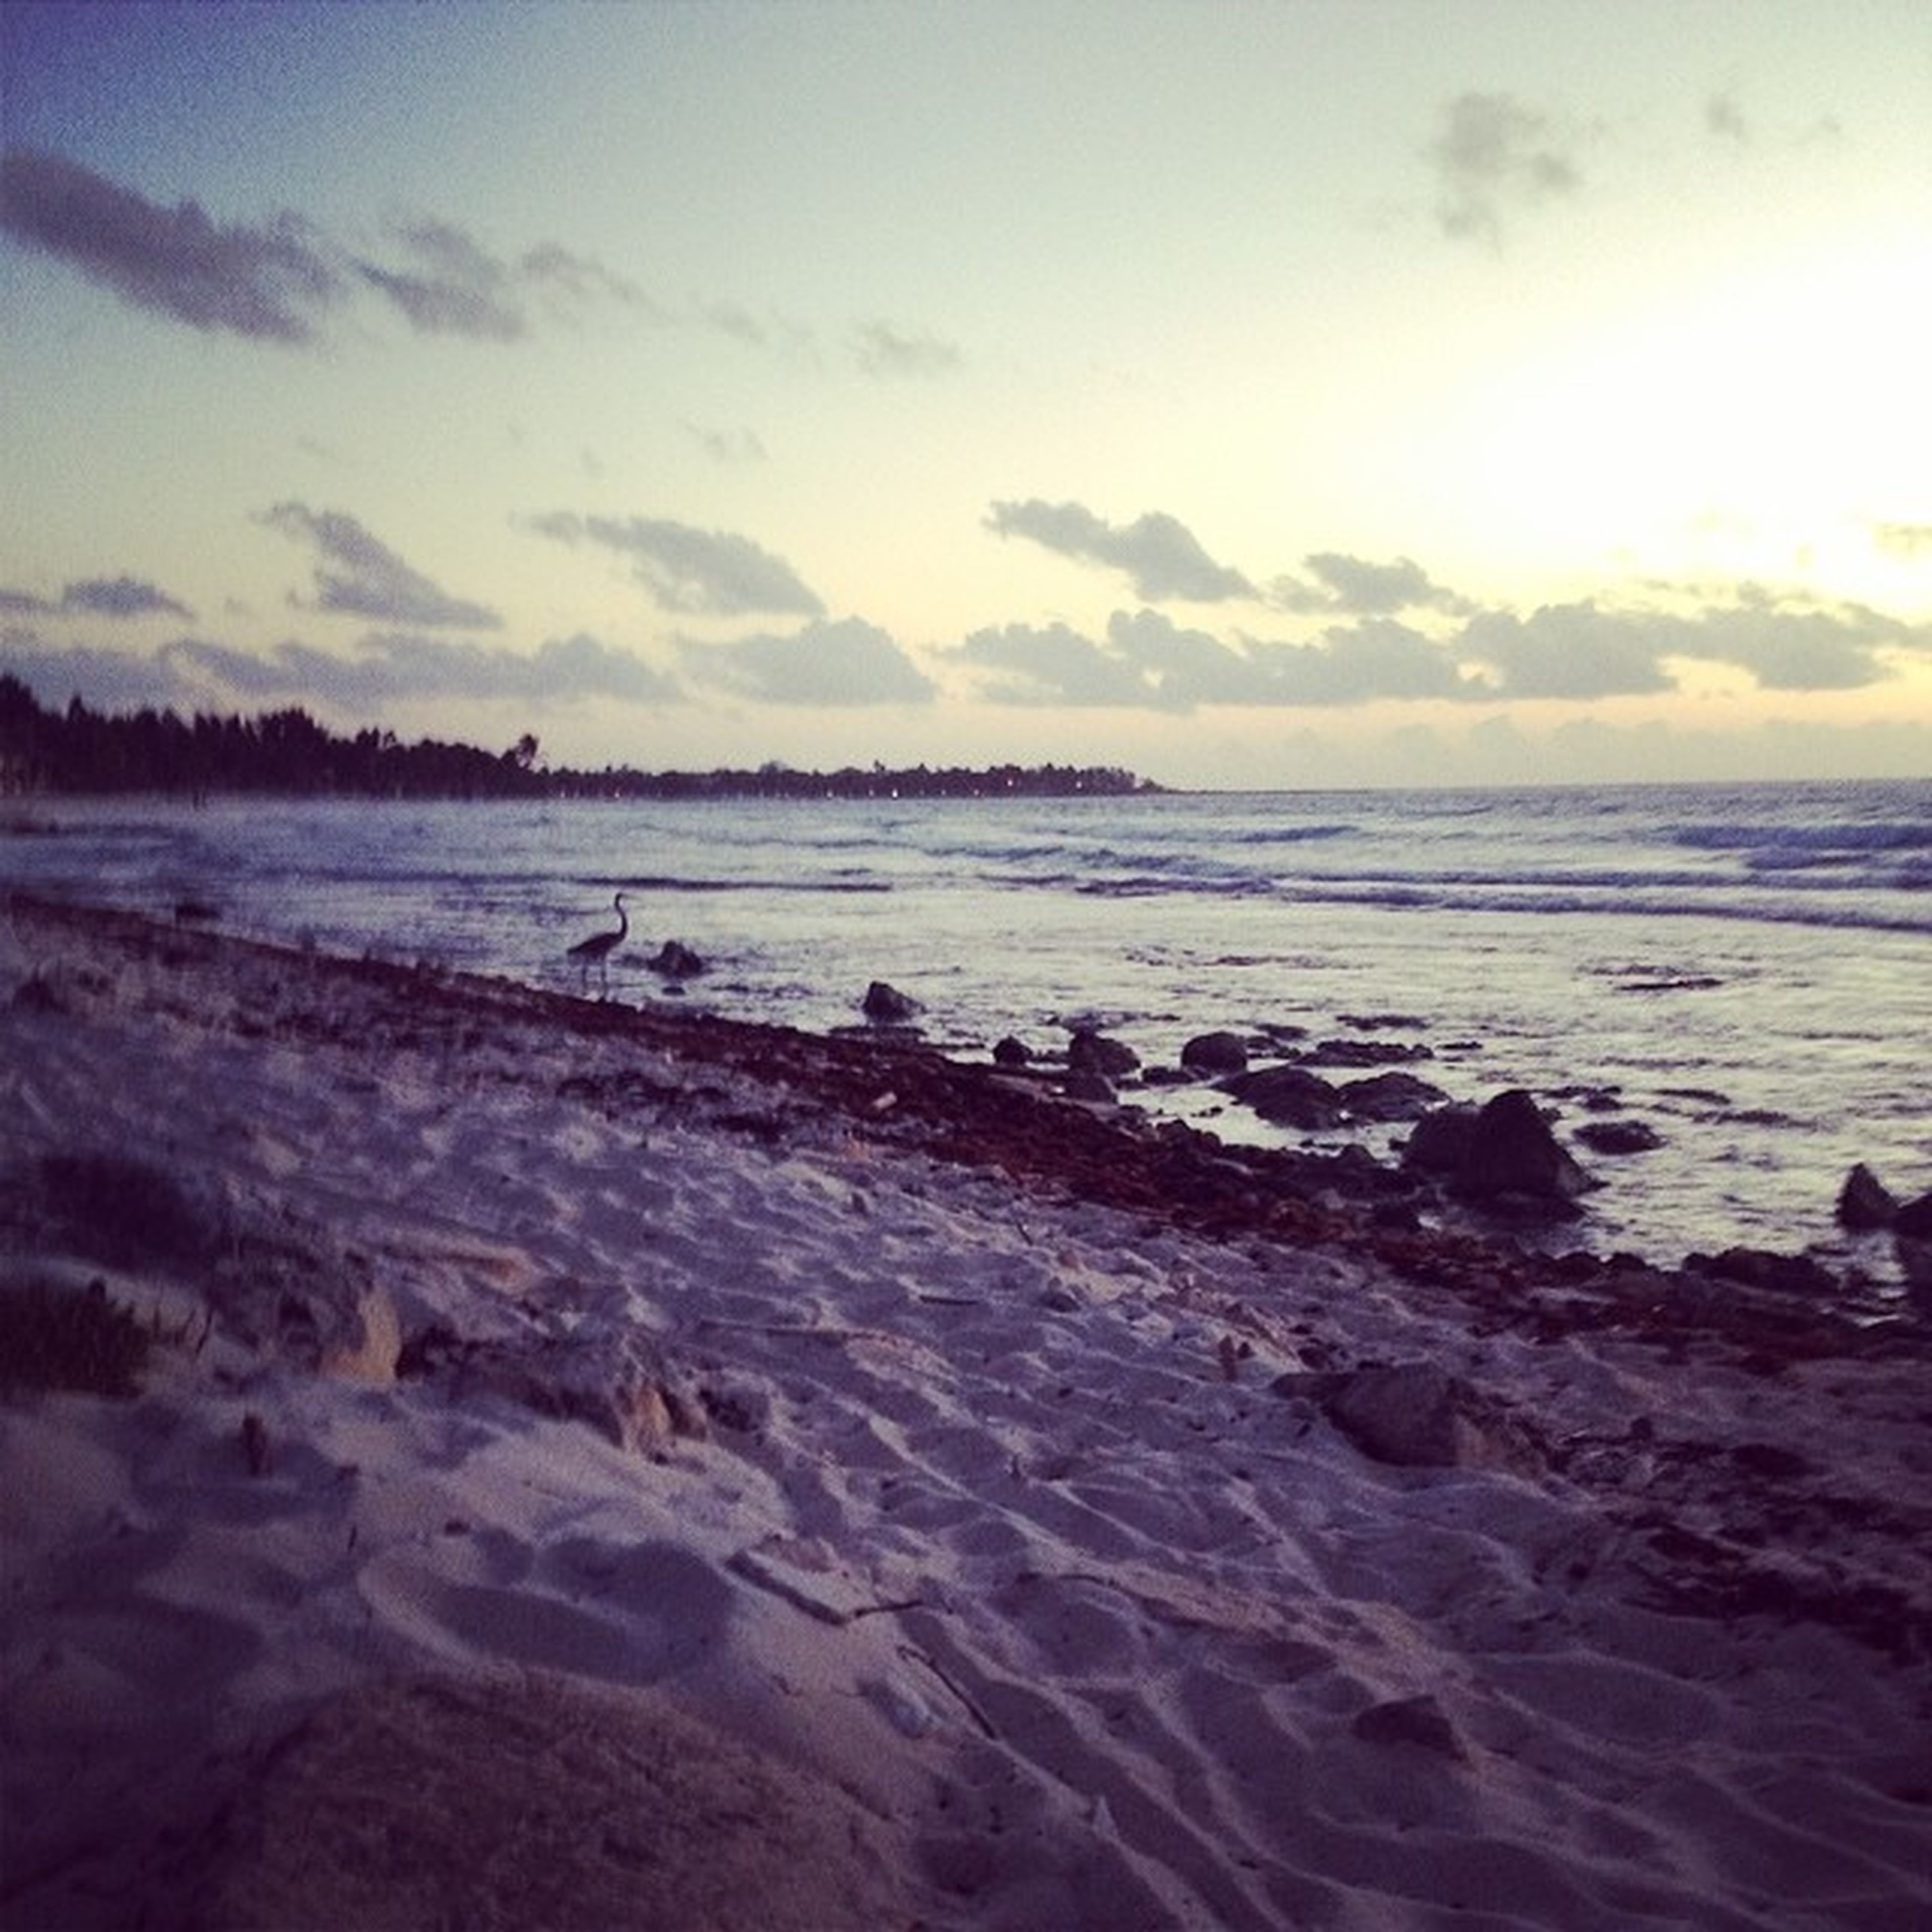 sea, water, beach, sky, scenics, tranquil scene, tranquility, beauty in nature, horizon over water, shore, nature, wave, cloud - sky, idyllic, sand, sunset, rock - object, outdoors, rippled, waterfront